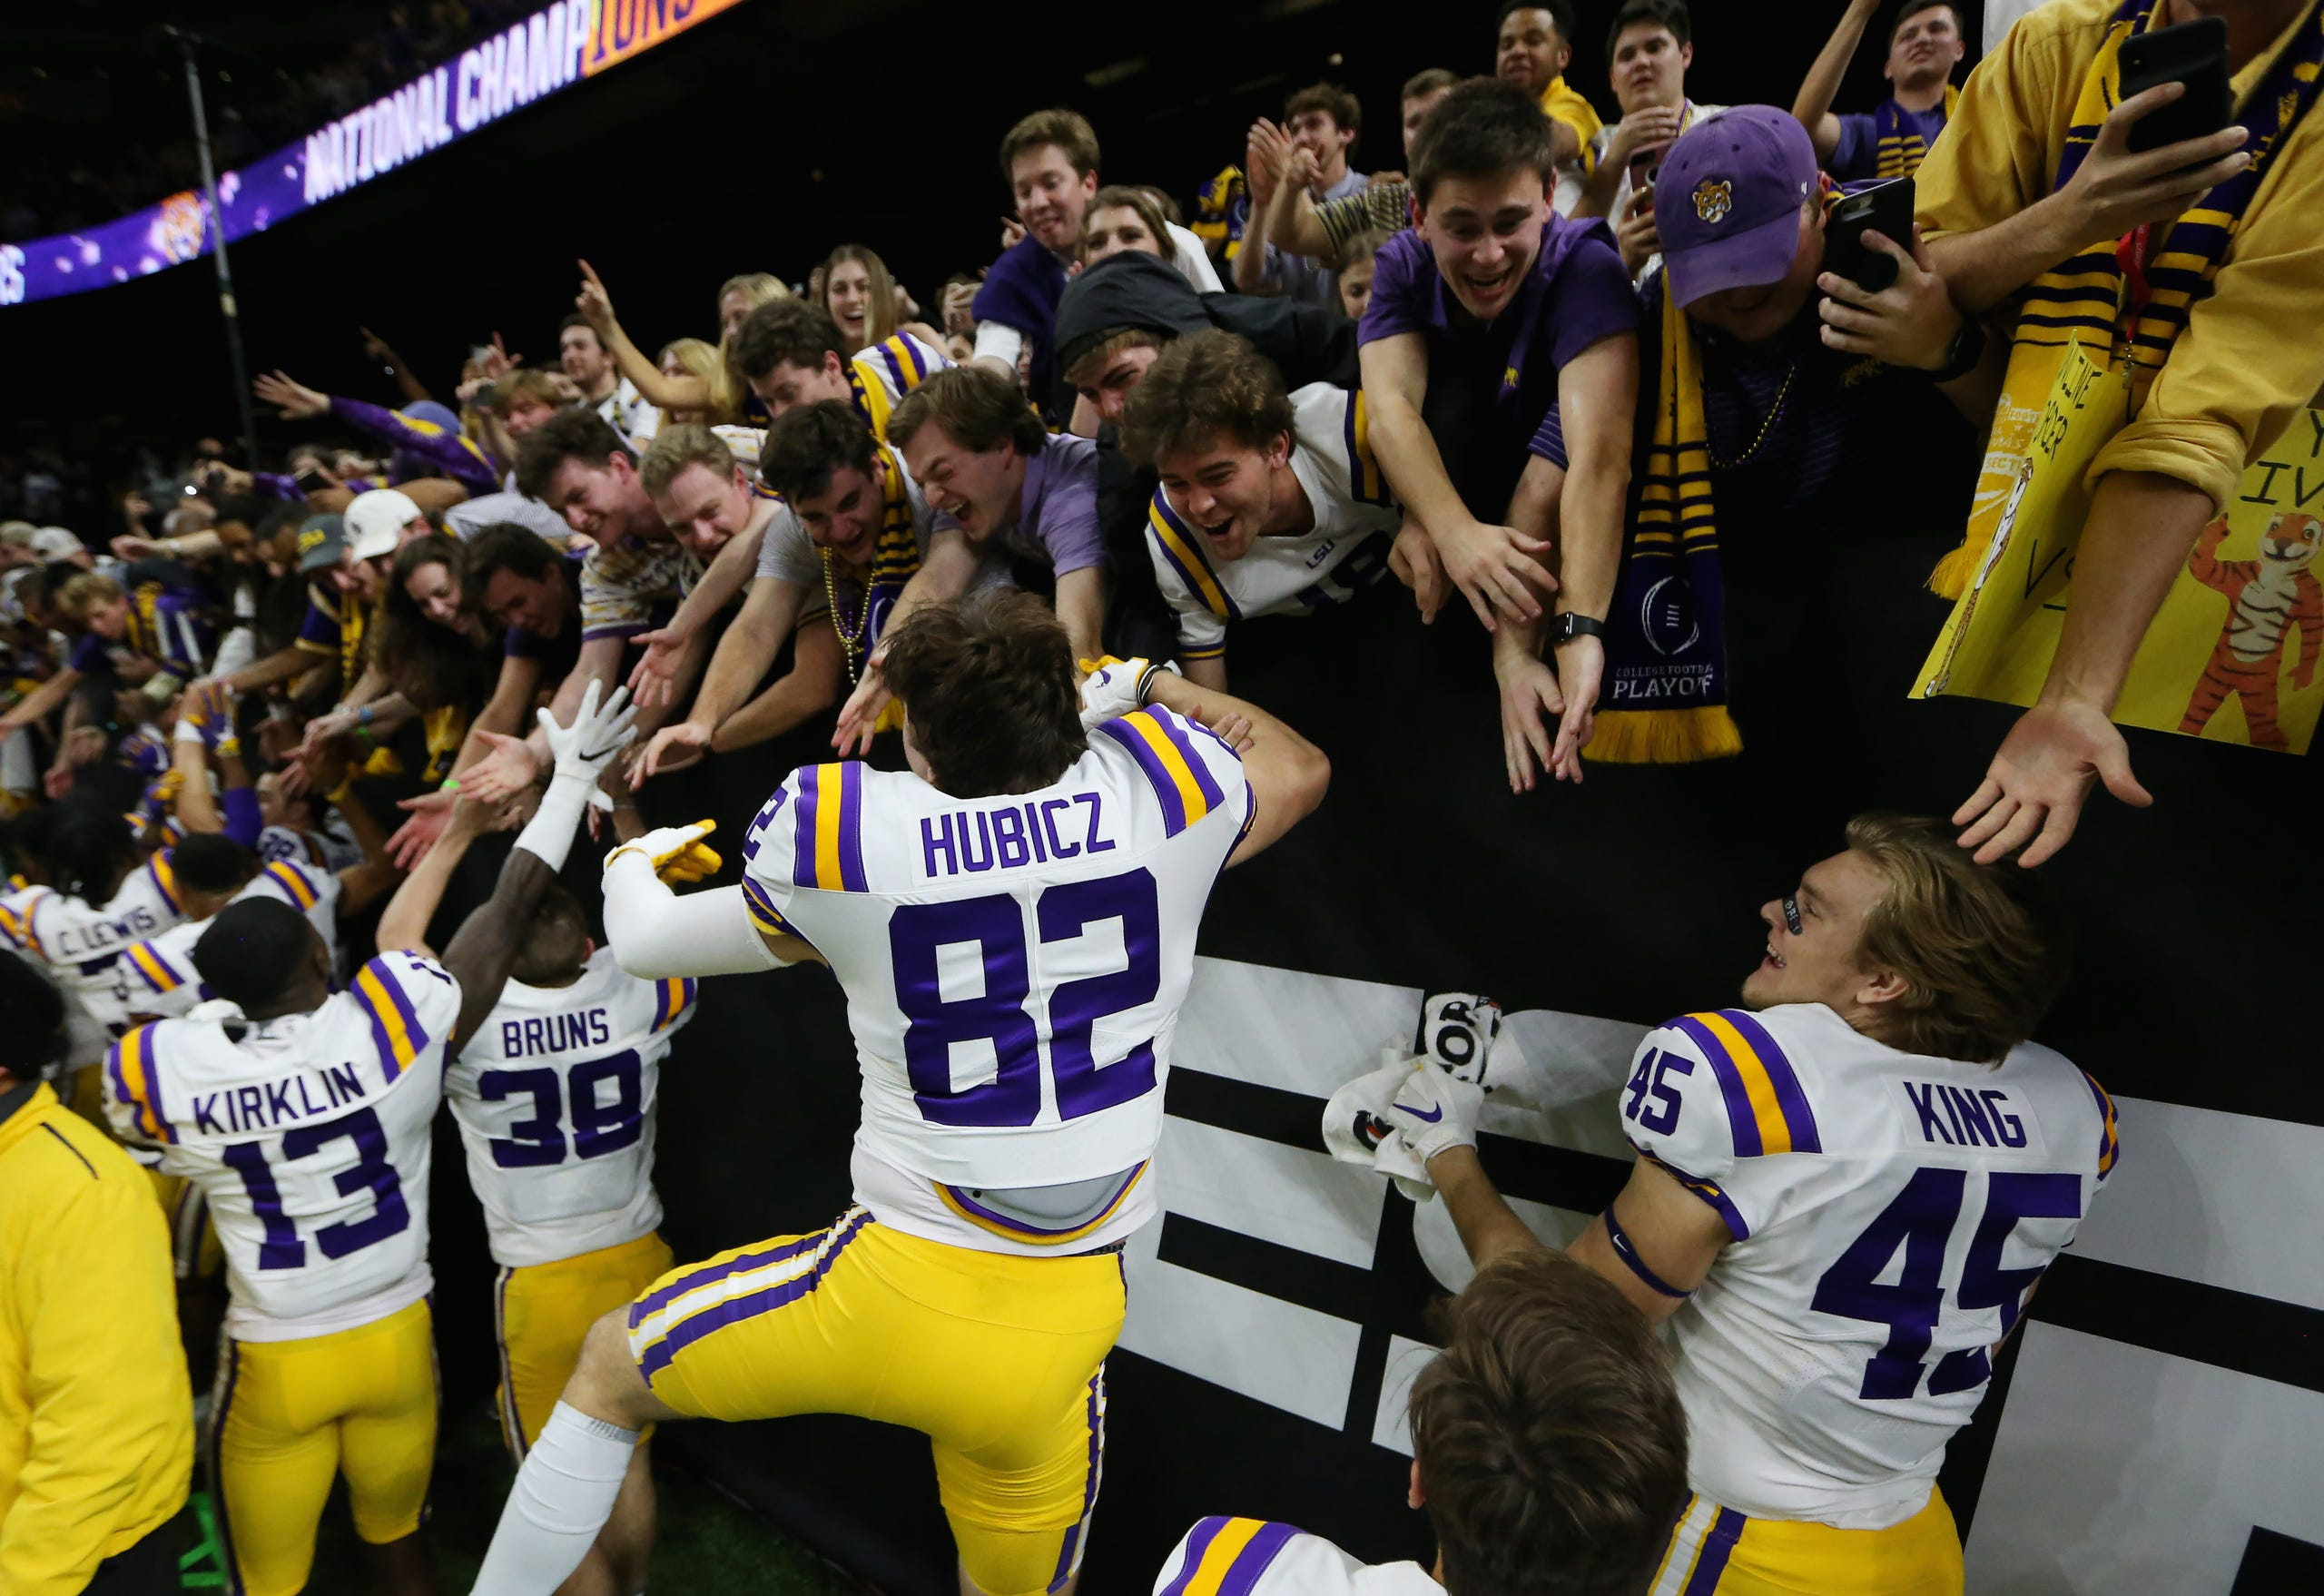 The LSU Tigers celebrate with the student section after their win over Clemson.